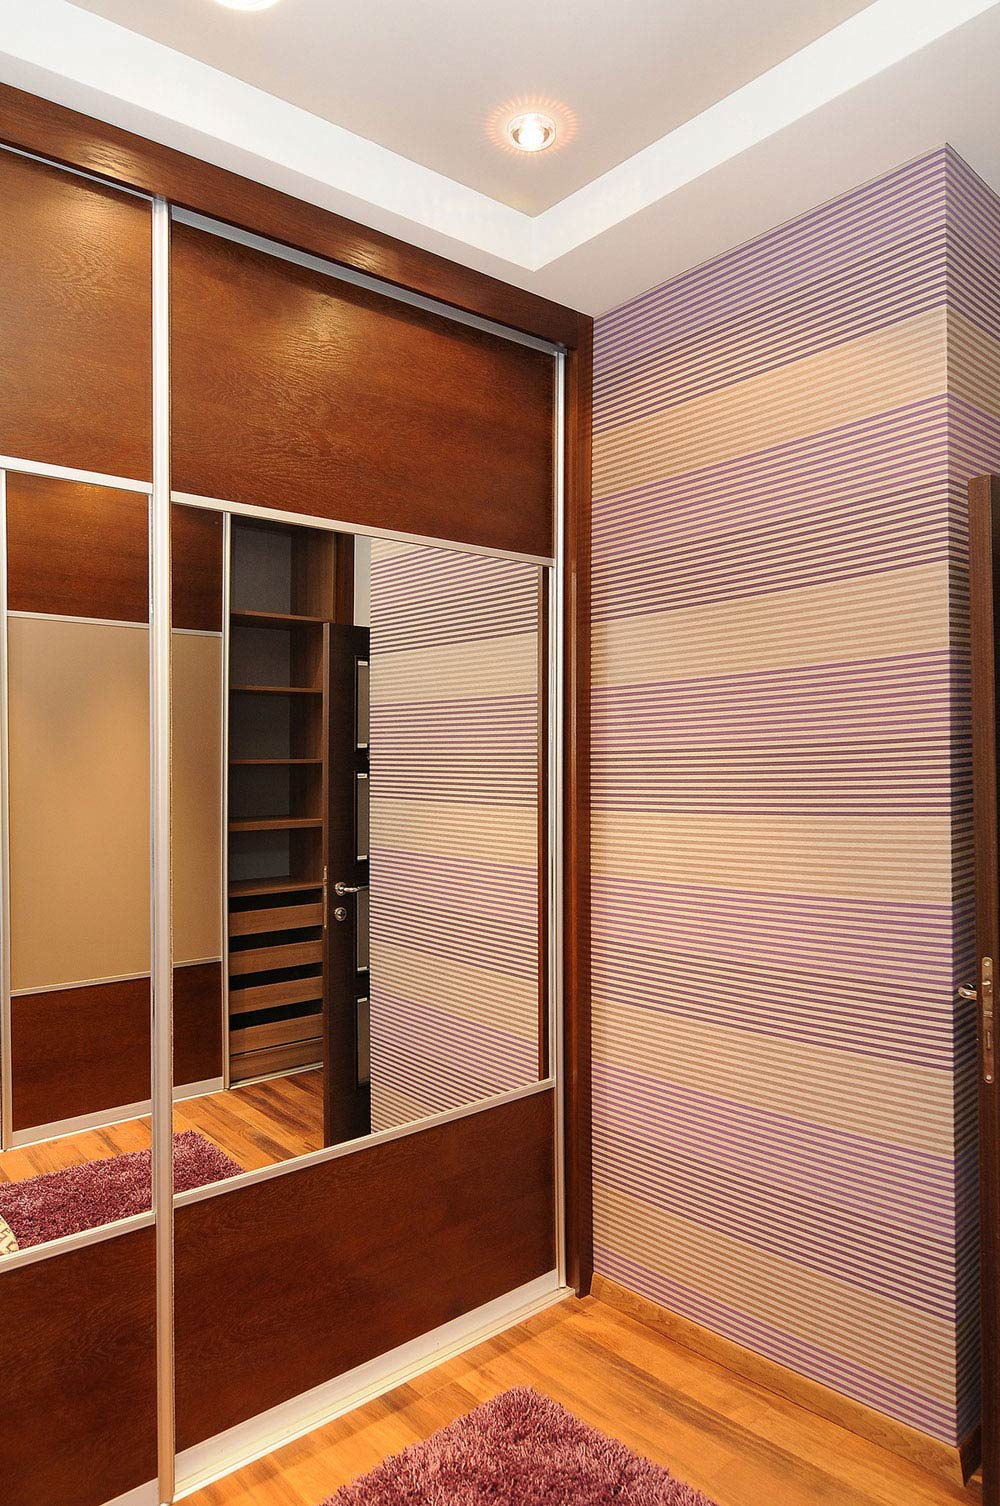 Wardrobe, Penthouse in Belgrade, Serbia